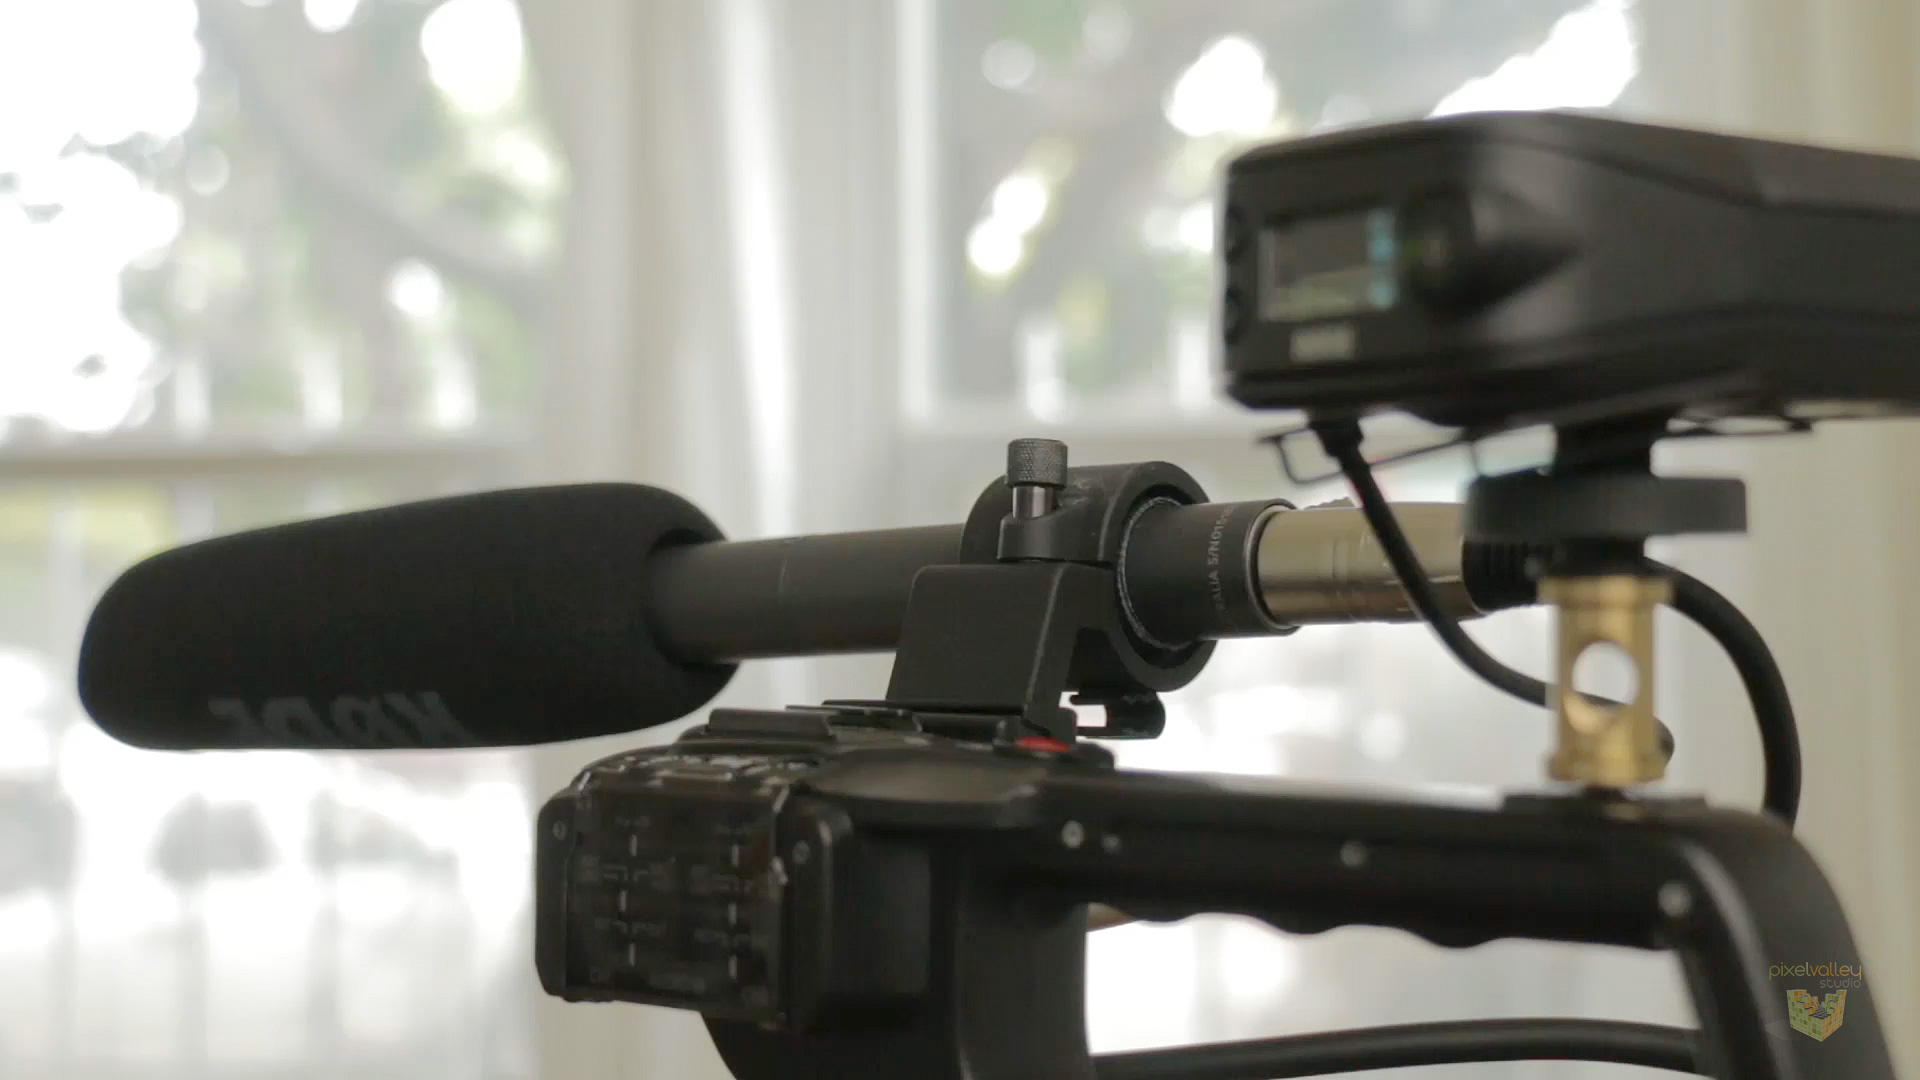 A Rode shotgun mic and Rodelink wireless lav mic receiver attached to the top of our Canon C100.